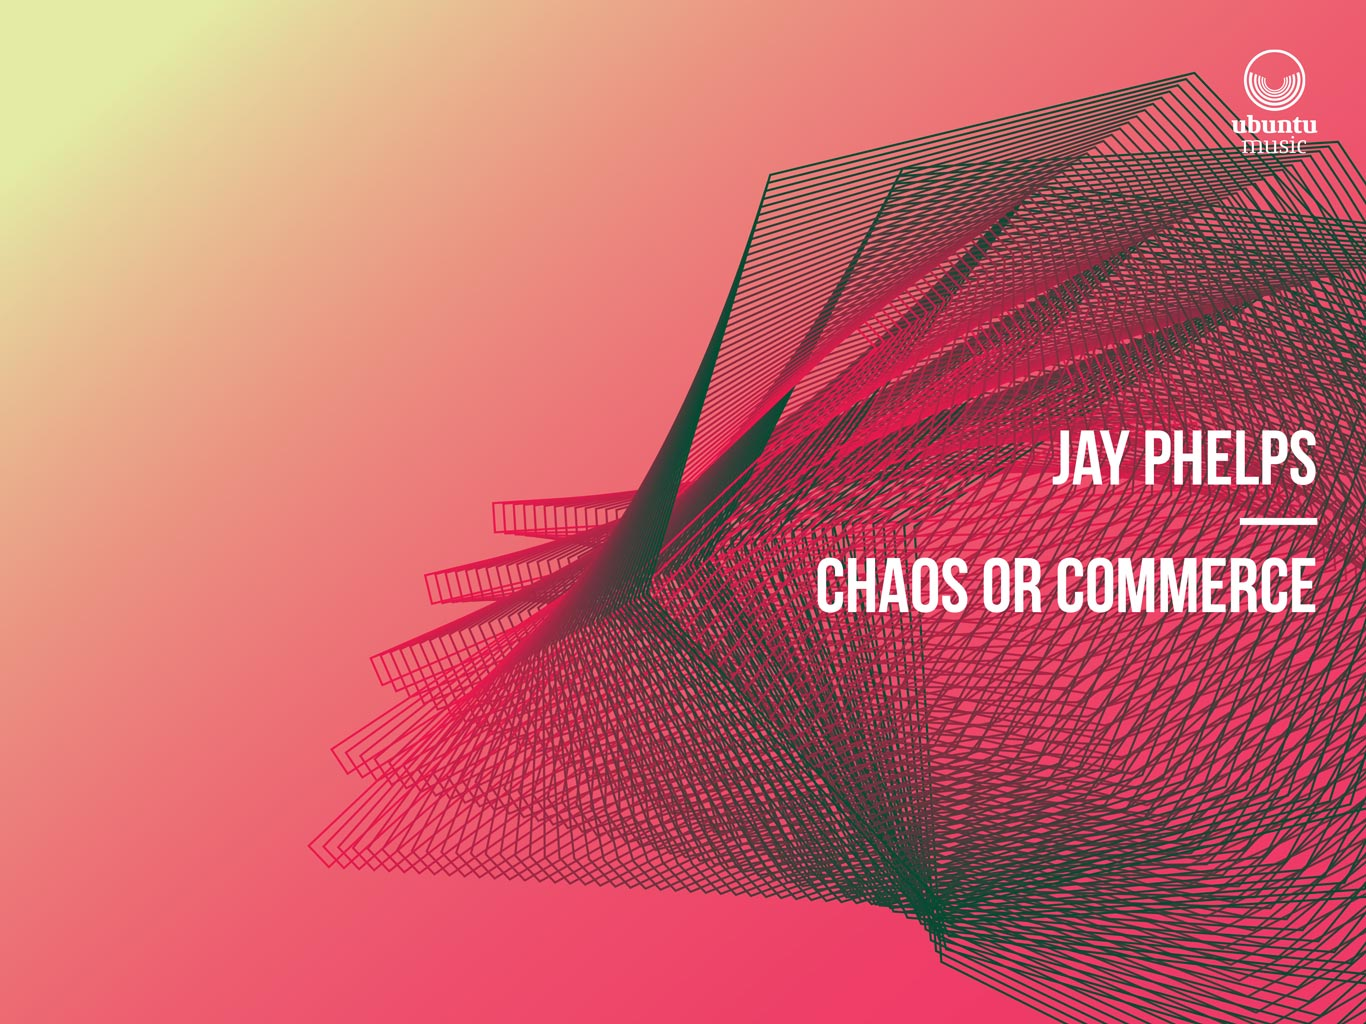 jay-phelps–chaos-or-commerce